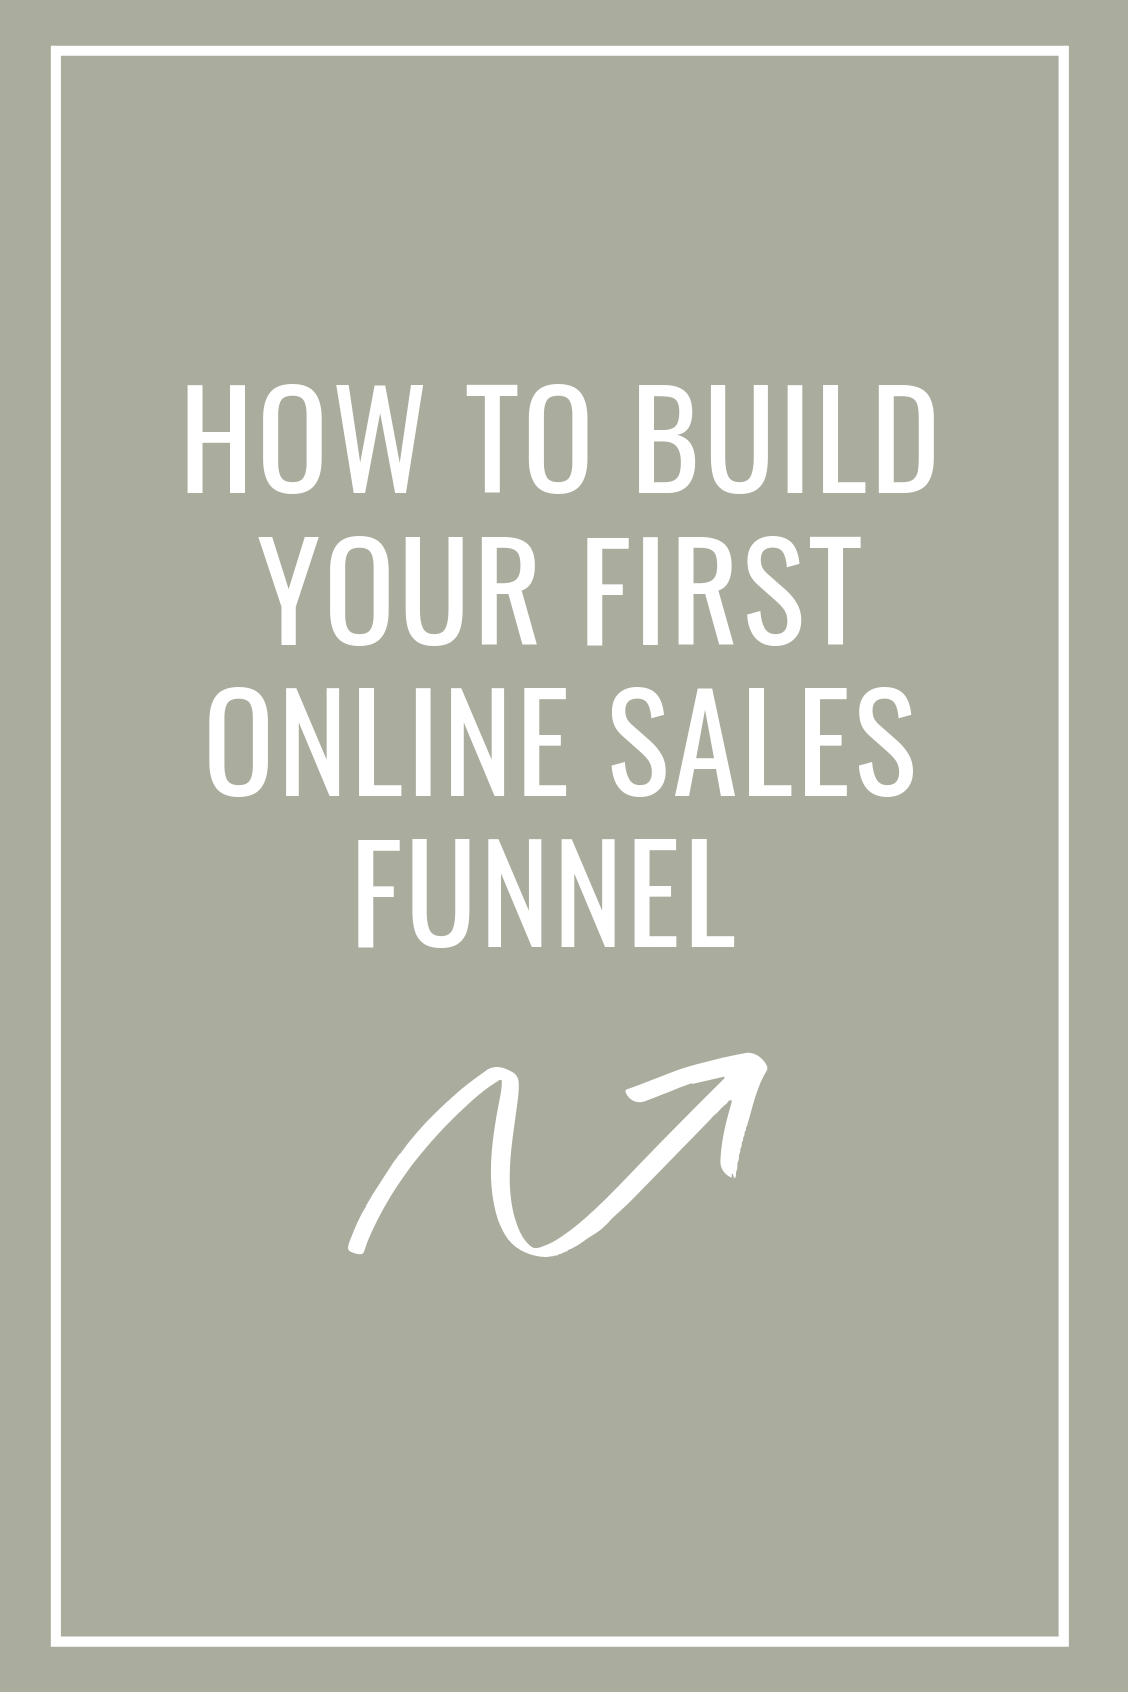 how-to-build-your-first-online-sales-funnel.png